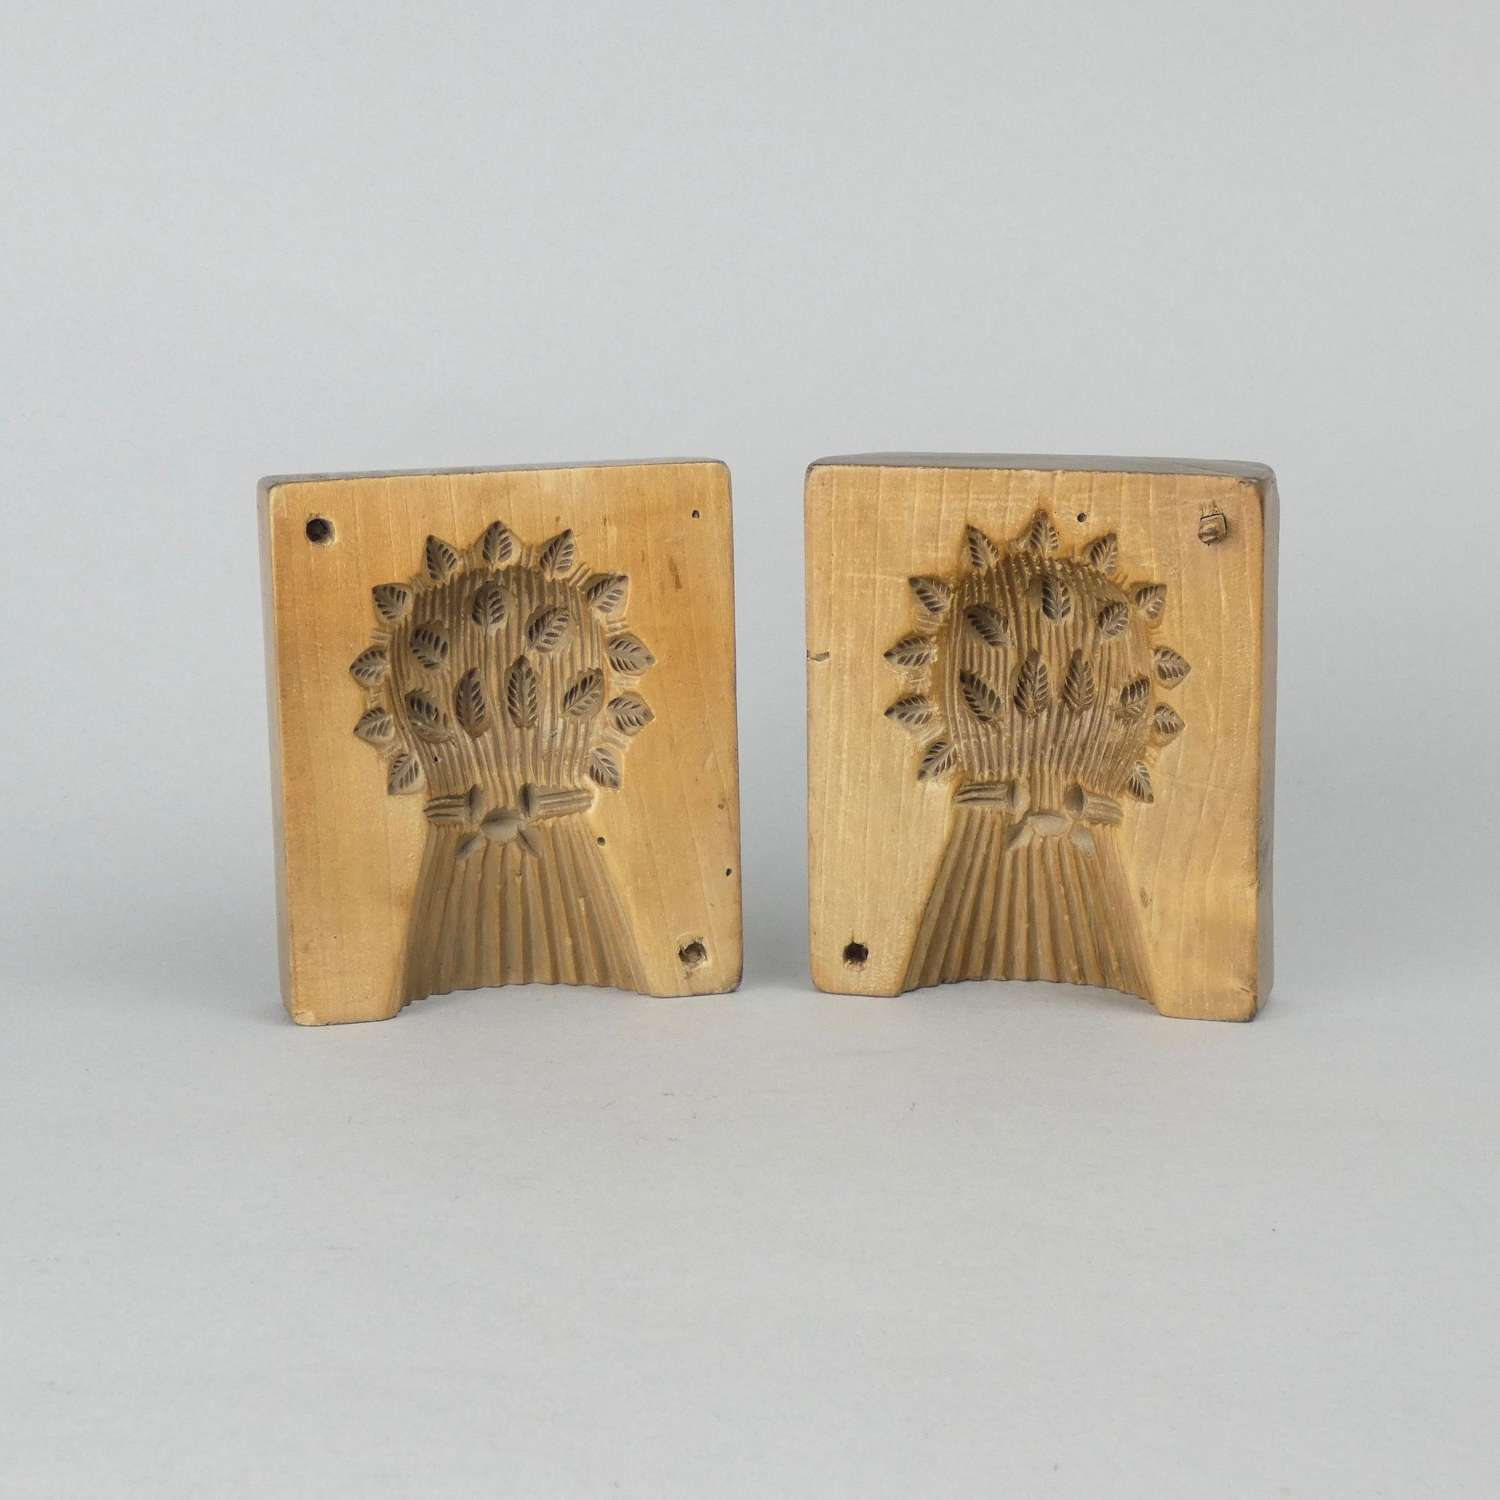 Early 19th century, wheat sheaf, butter mould